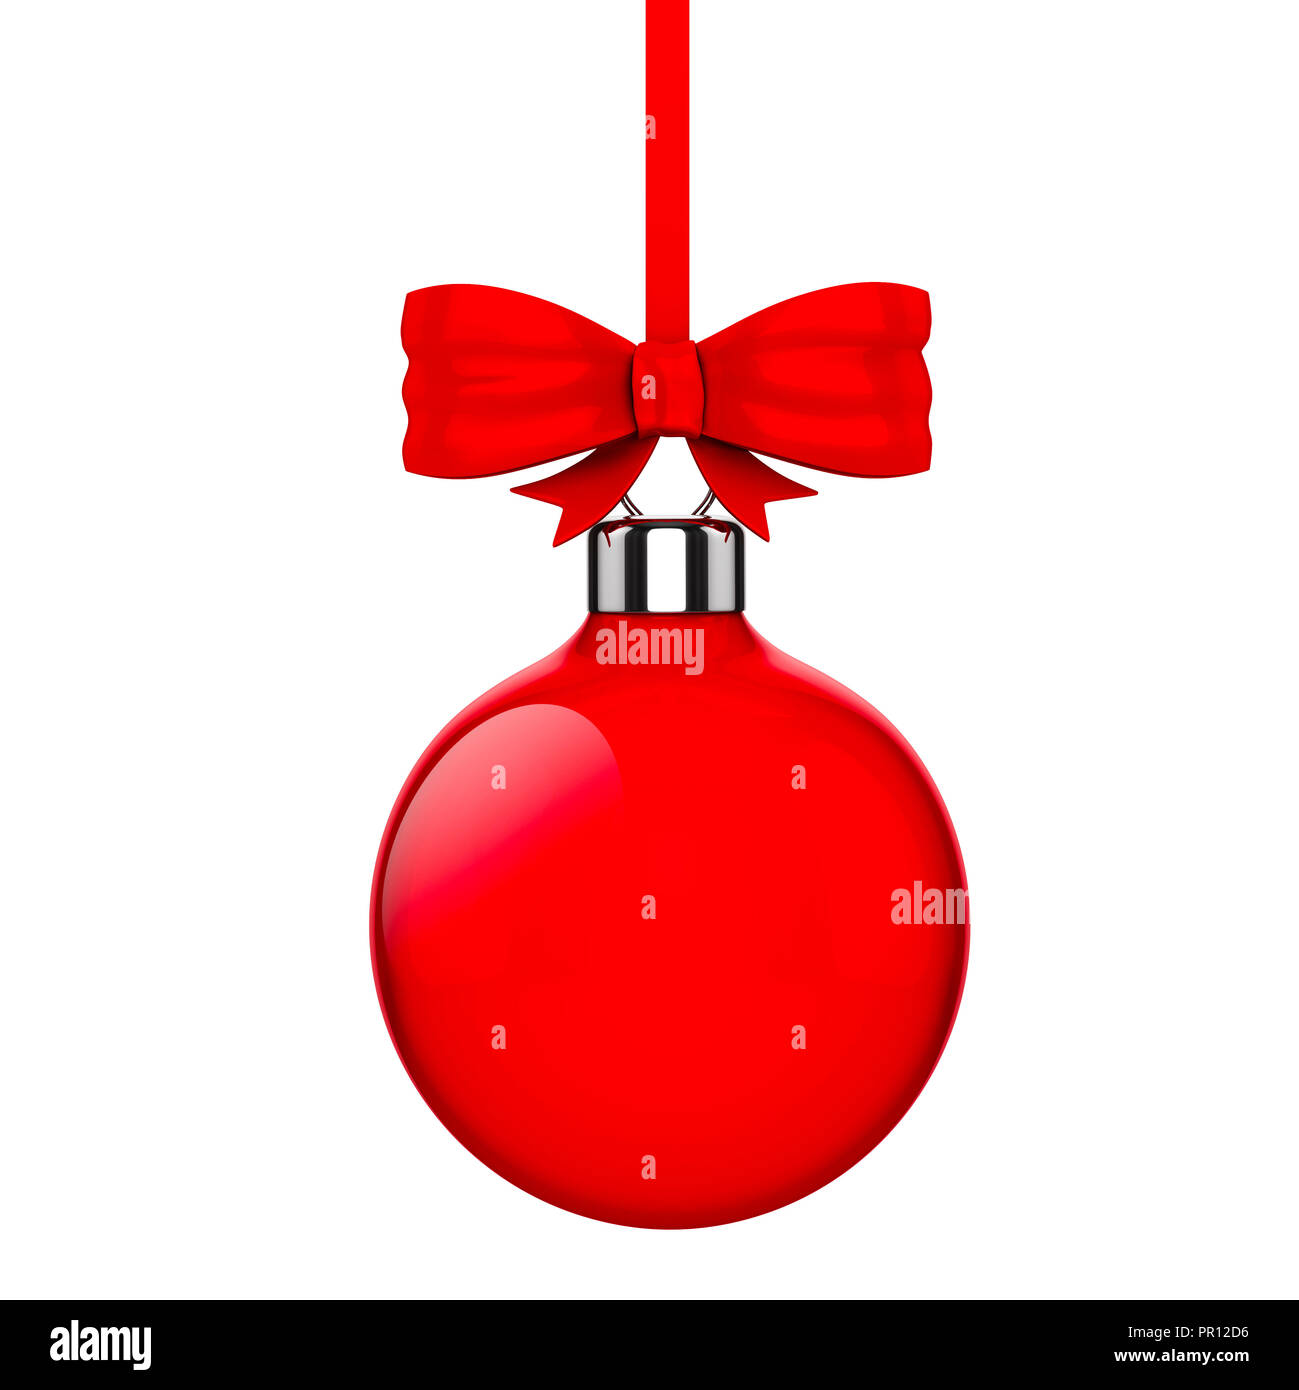 3d Christmas ball ornaments with red ribbon and bows on white background - Stock Image